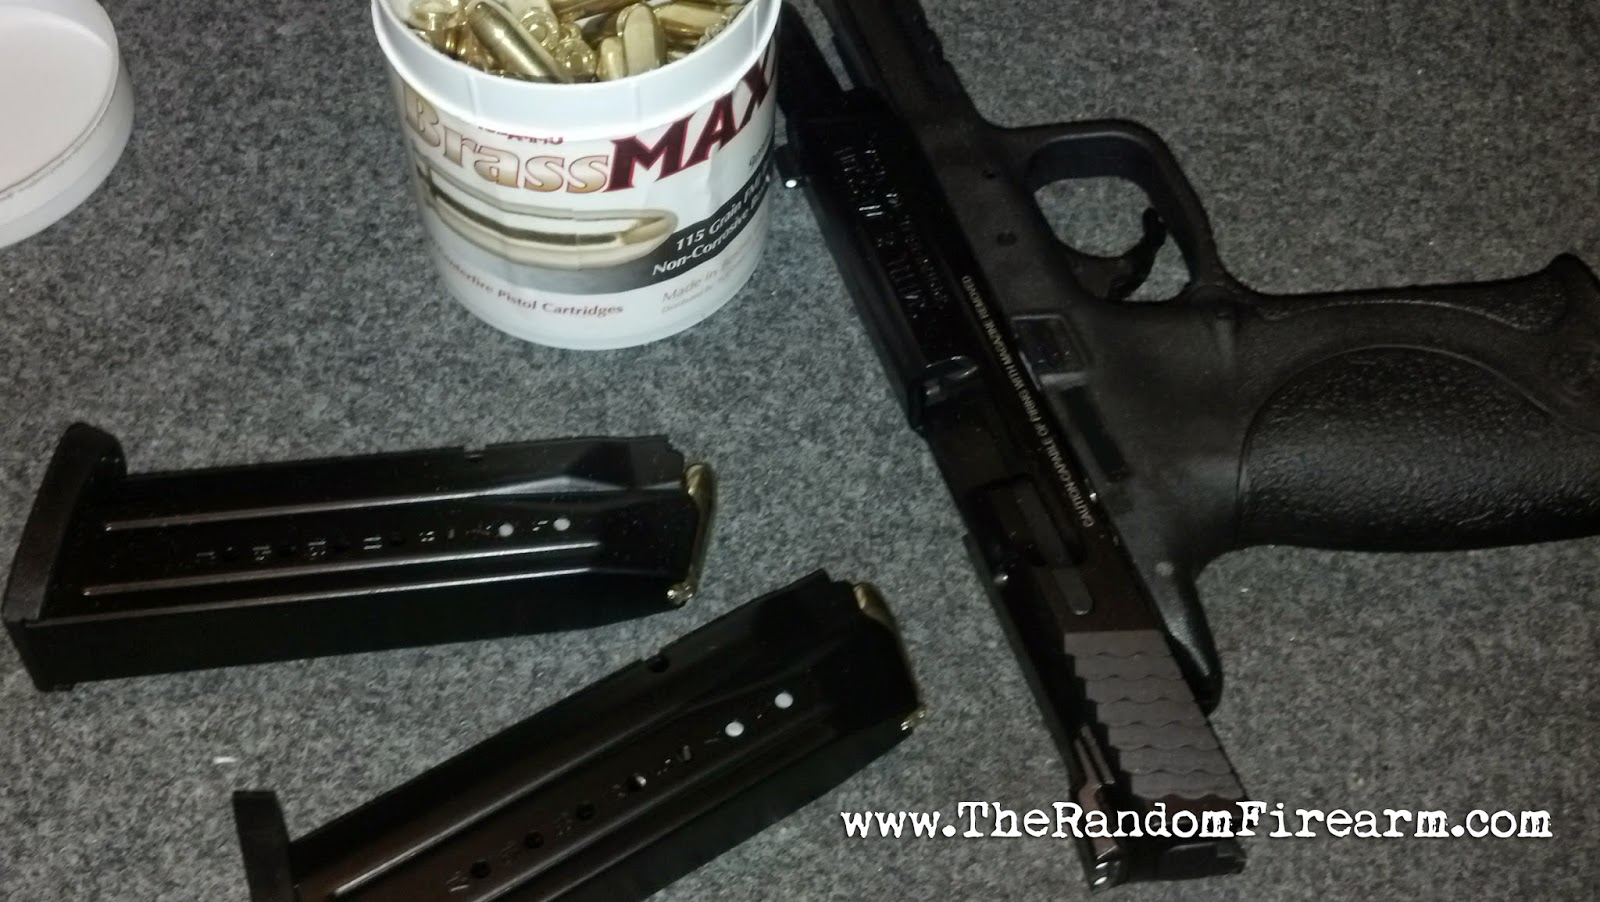 sccy cxp2 smith and wesson M&p9 tulammo brassmaxx steel core magnetic ammo 9mm review